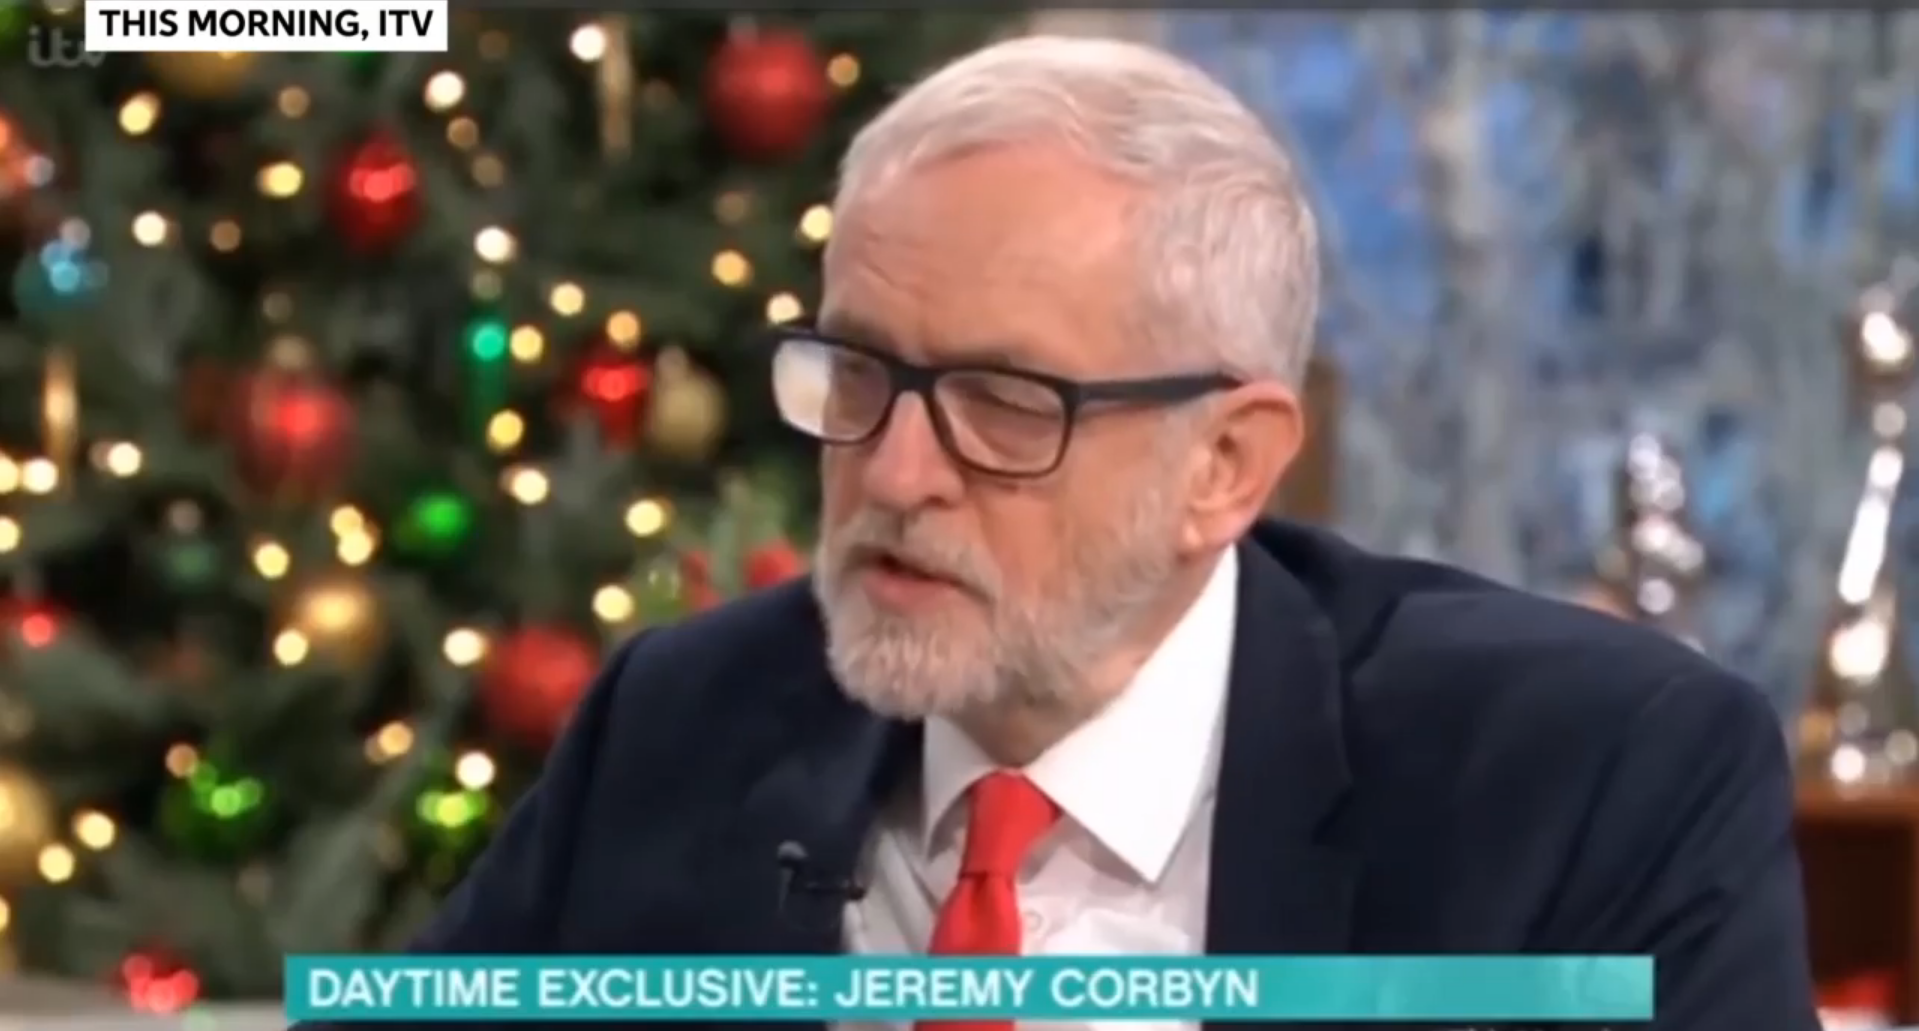 Jeremy Corbyn Rated Top Anti-Semite of 2019 by Simon Wiesenthal Center